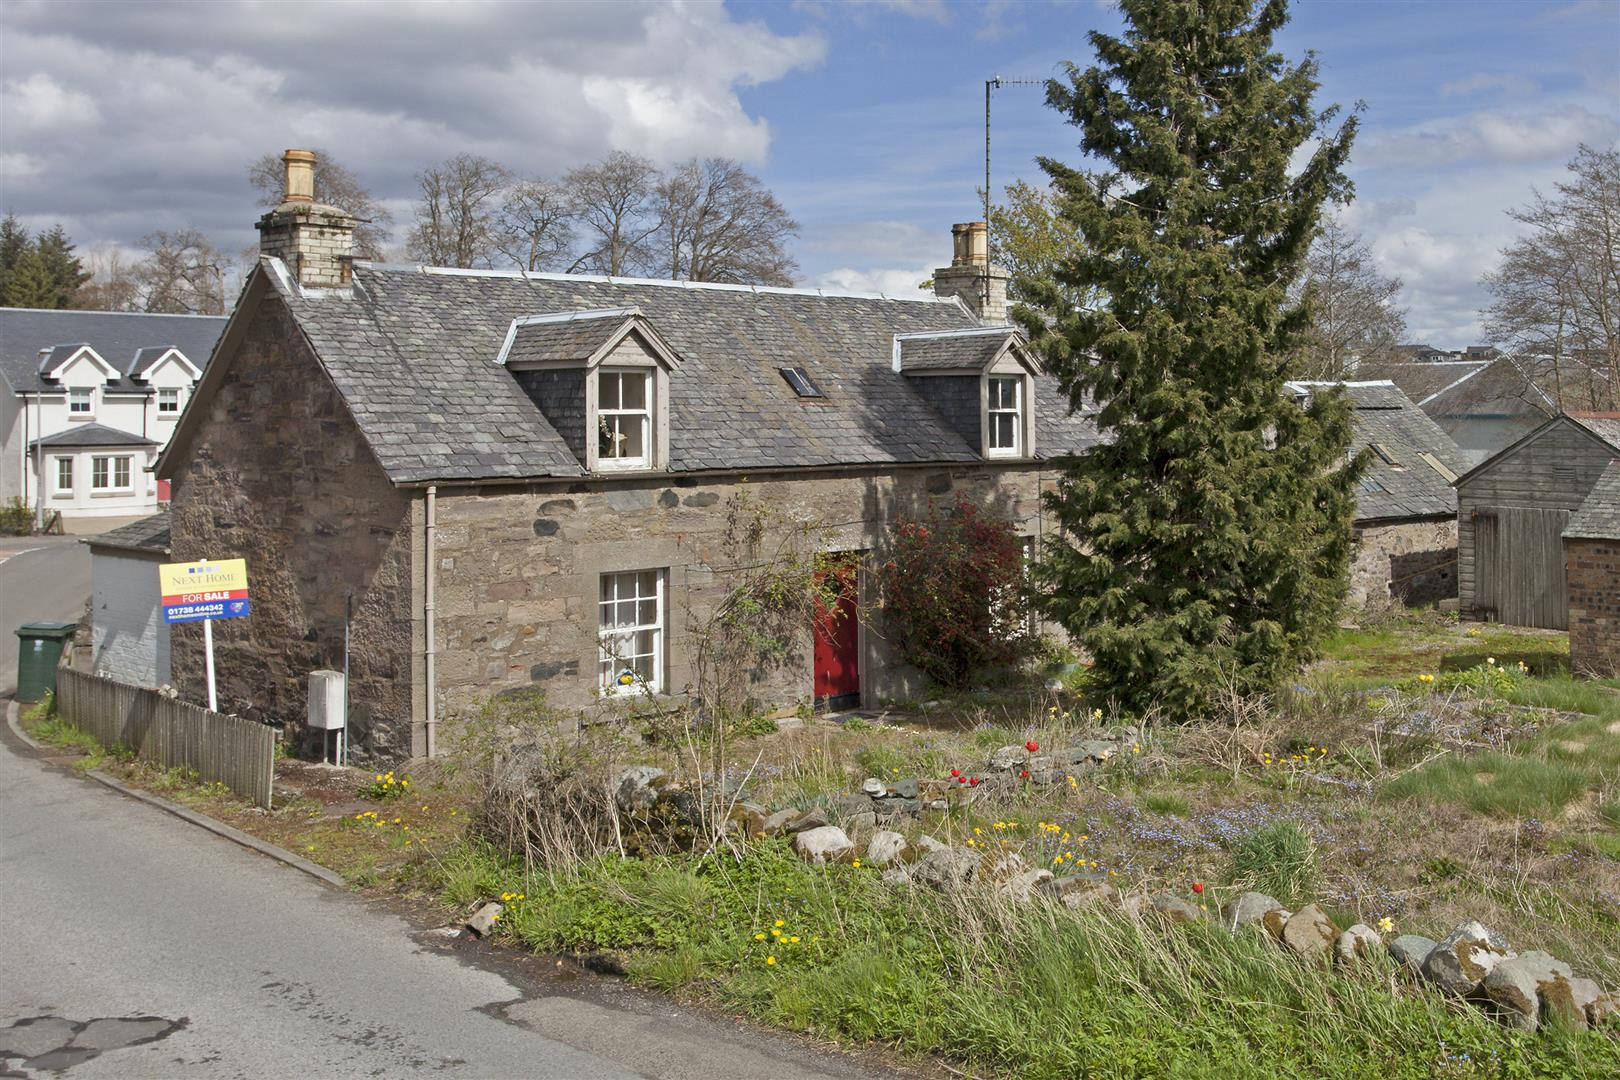 Coxland Farmhouse, Tulliebelton Road, Bankfoot, Bankfoot Perth, Perthshire, PH1 4BS, UK